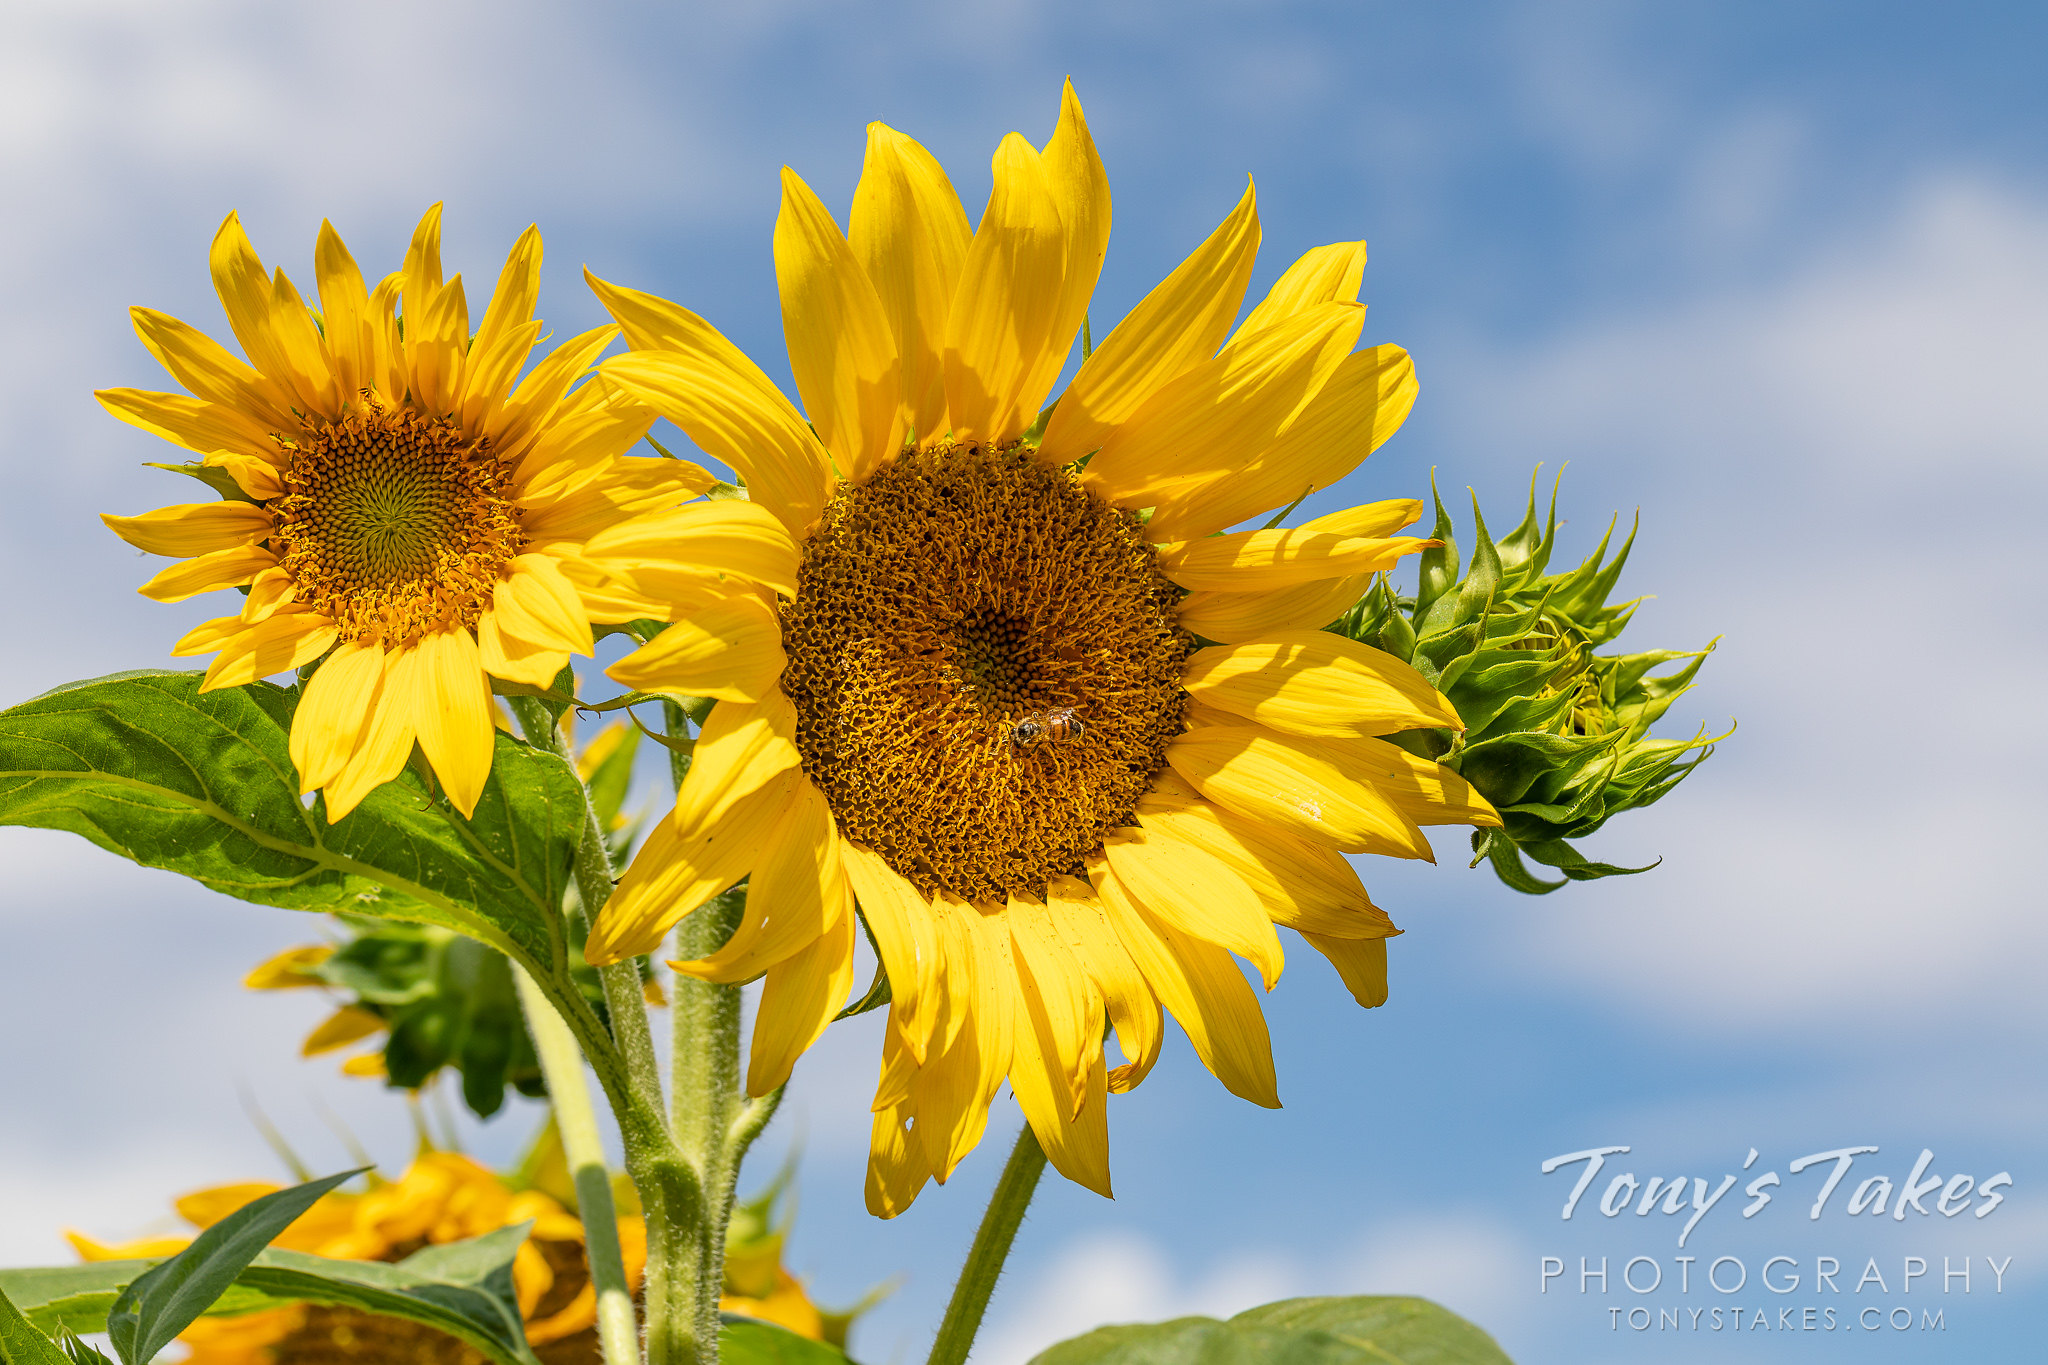 A golden sunflower against the blue, Colorado sky. (© Tony's Takes)